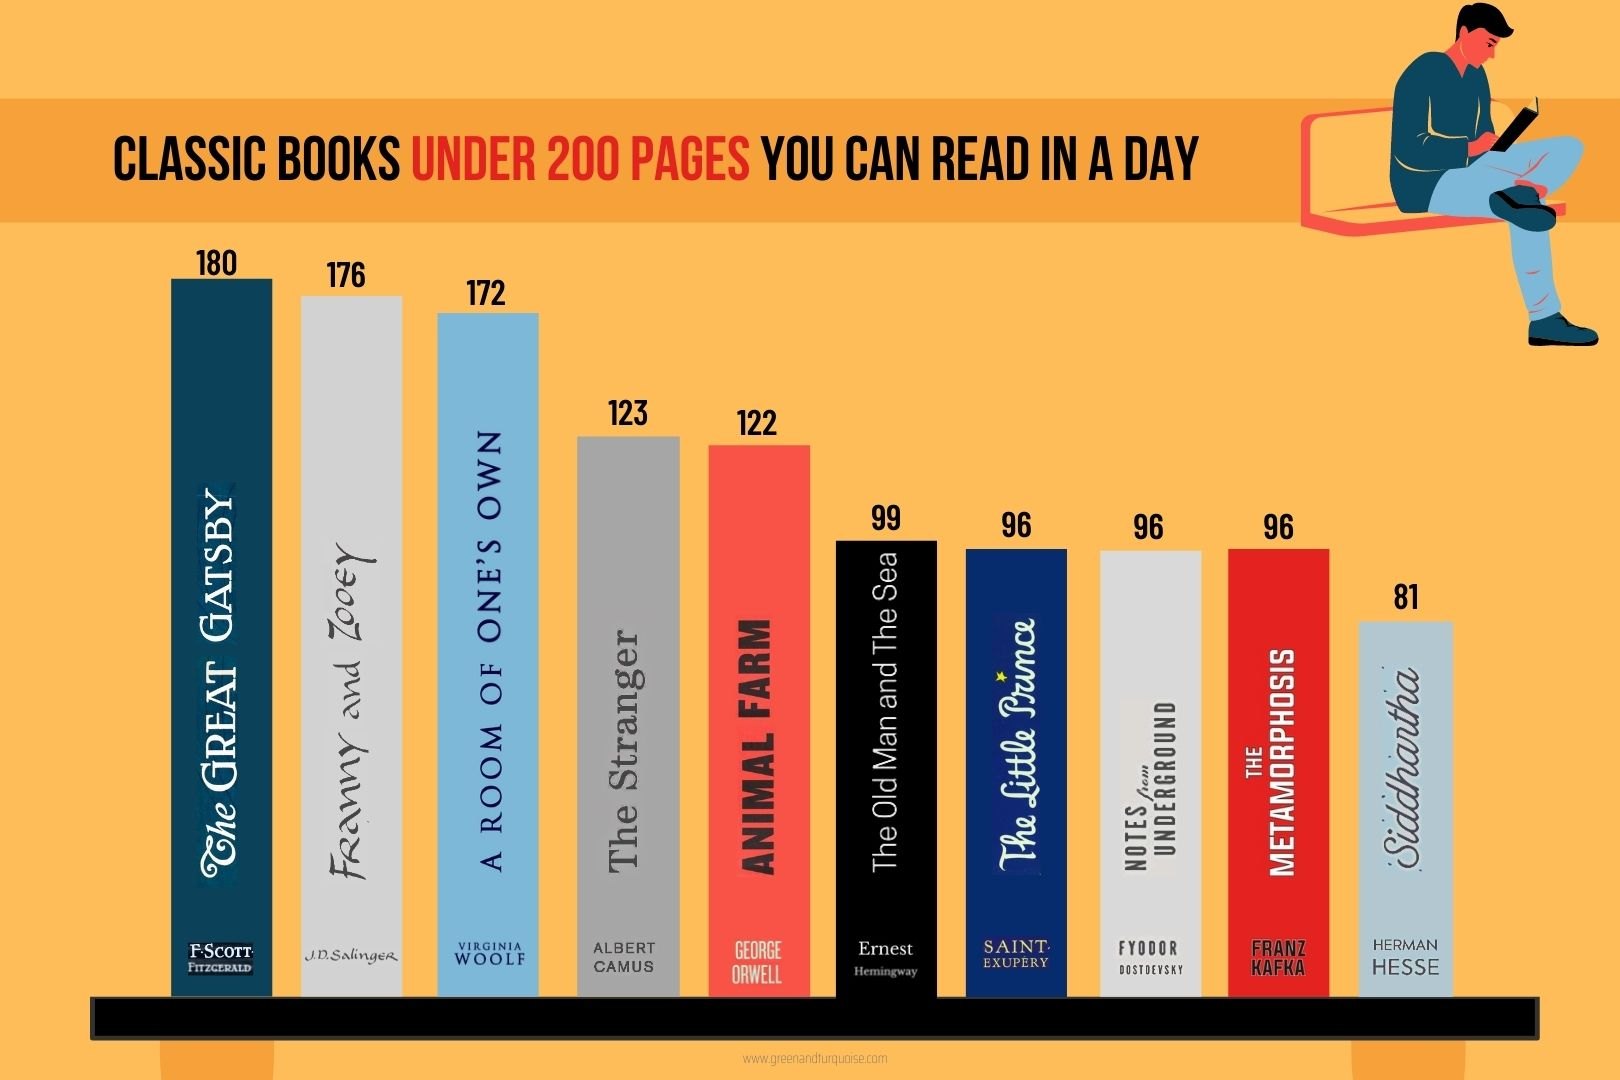 classic books under 200 pages infographic